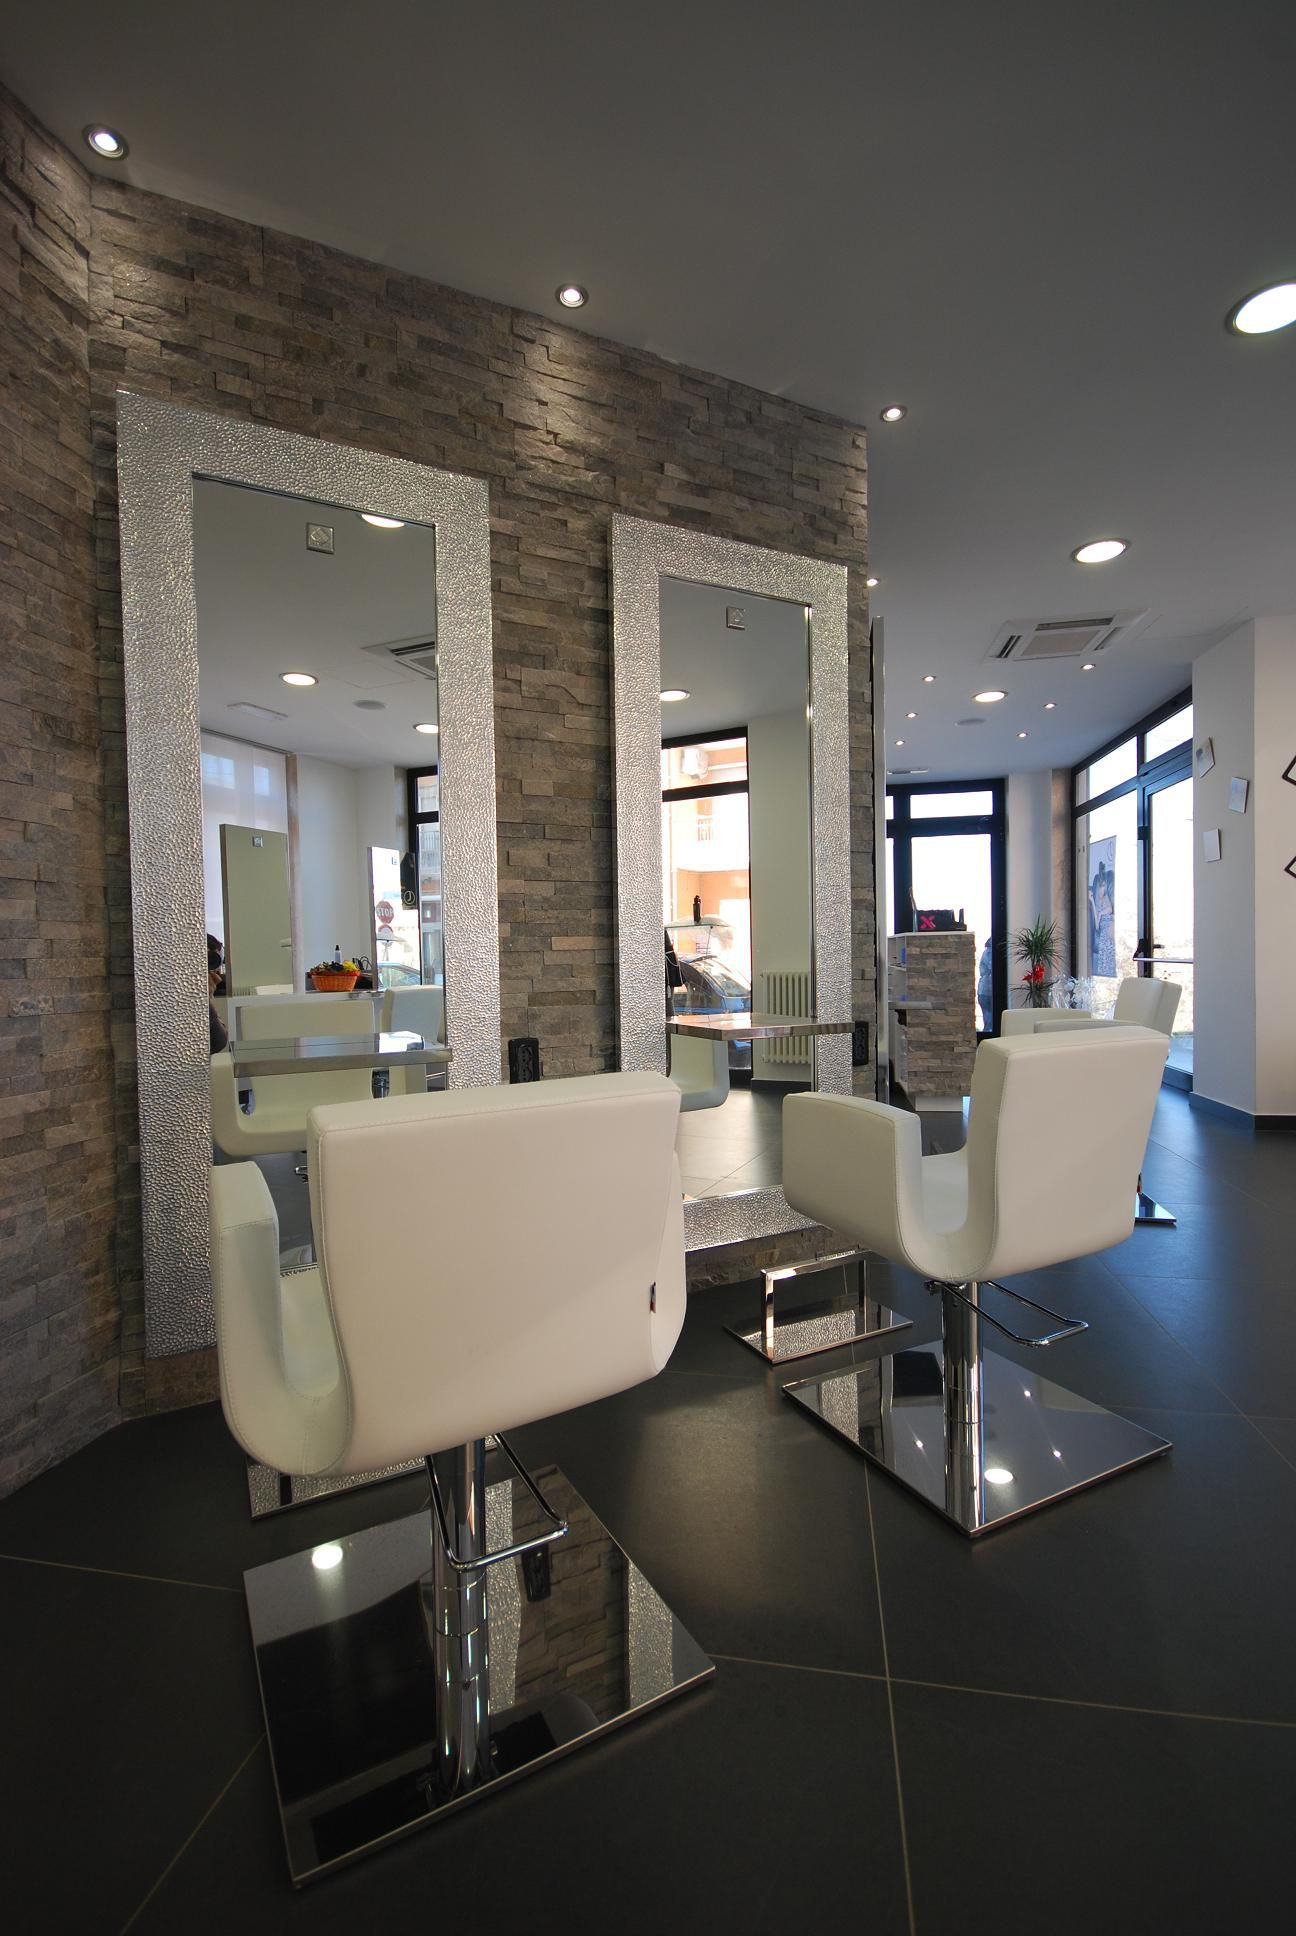 nelson mobilier hair salon furniture made in france hair salon design hair salon - Hair Salon Design Ideas